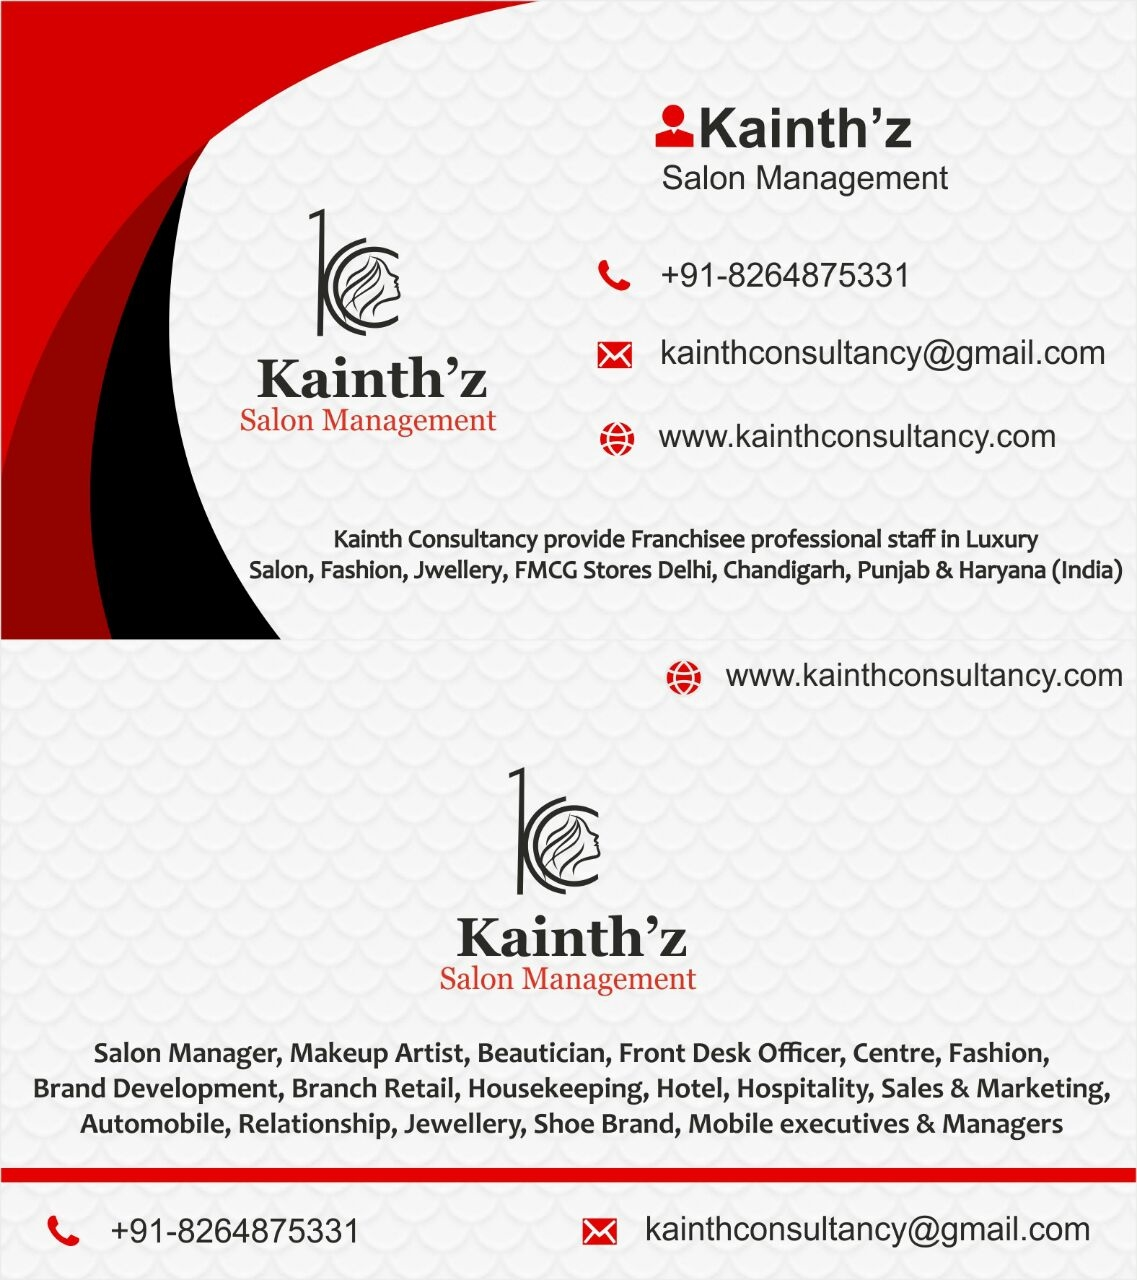 """#Salon #Fashion #Hospitality #Academy #Career #Bridal #Makeup #Placement #Punjab #Haryana #Chandigarh  Simply click the button,""""Quick Resume"""" on our website attach Resume and Submit www.kainthconsultancy.com Email: kainthconsultancy@gmail.com  Whatsapp:- 9256476287"""